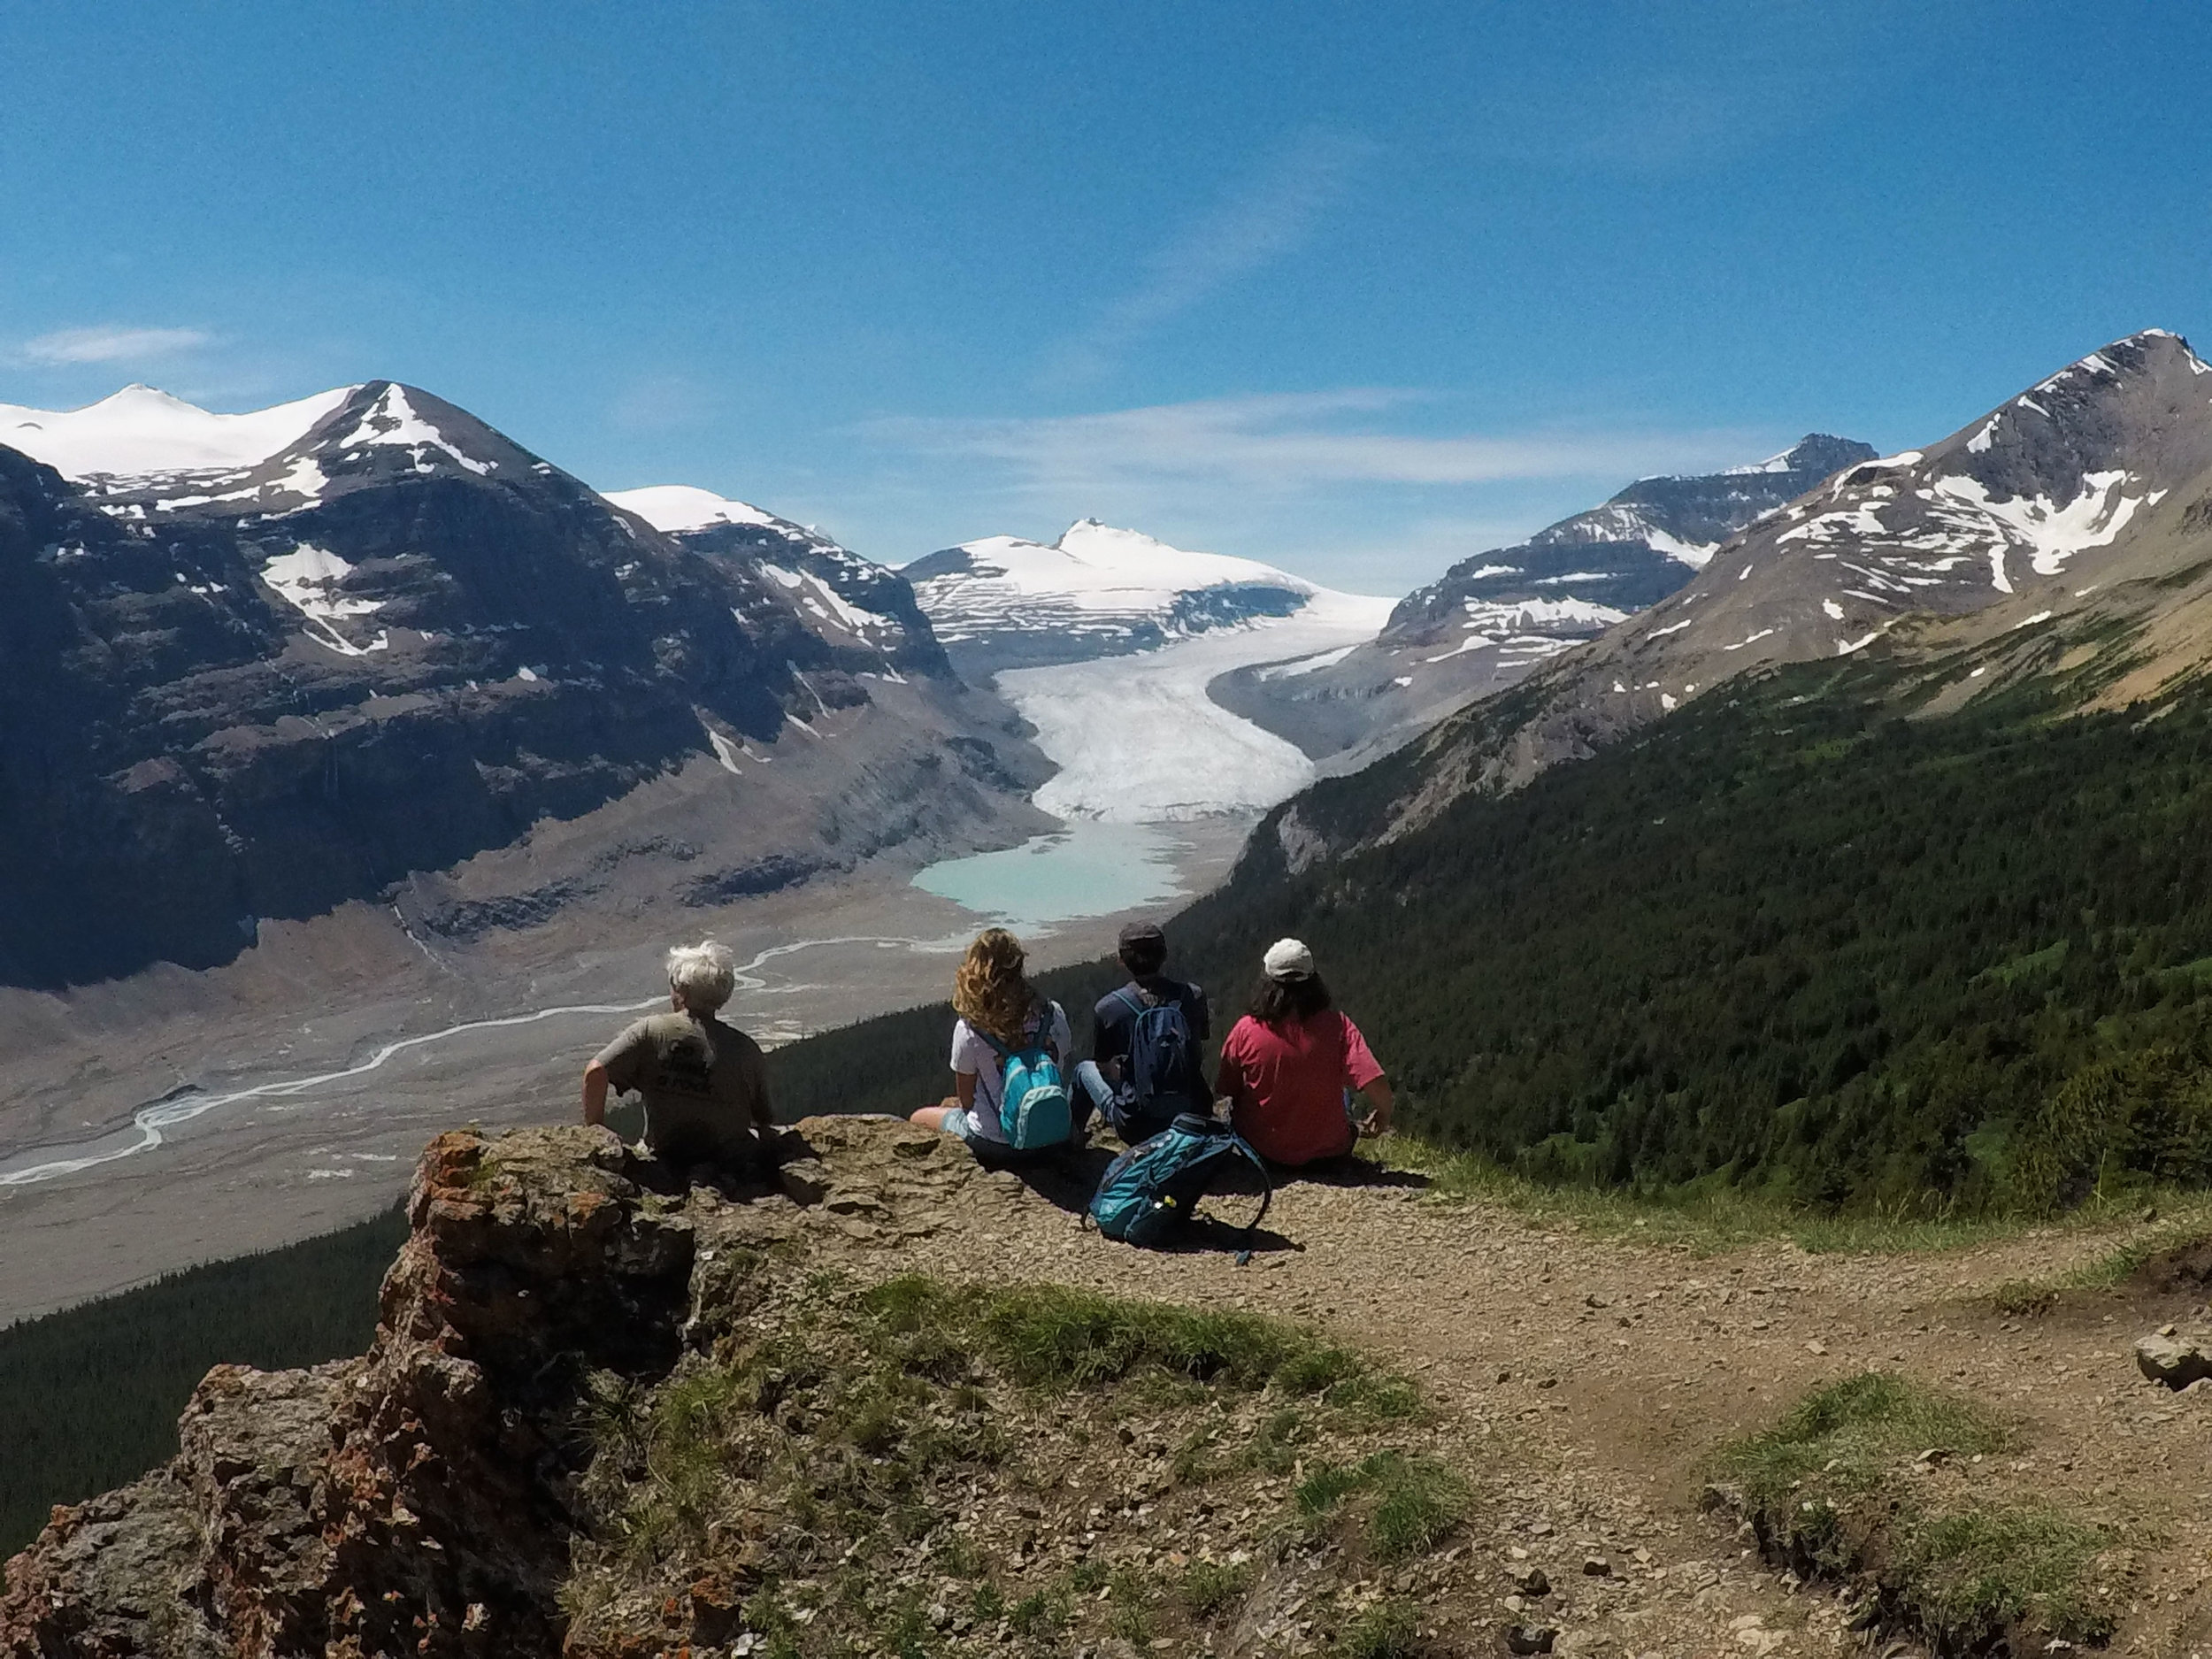 Picnic on a guided hiking tour in Jasper National Park.